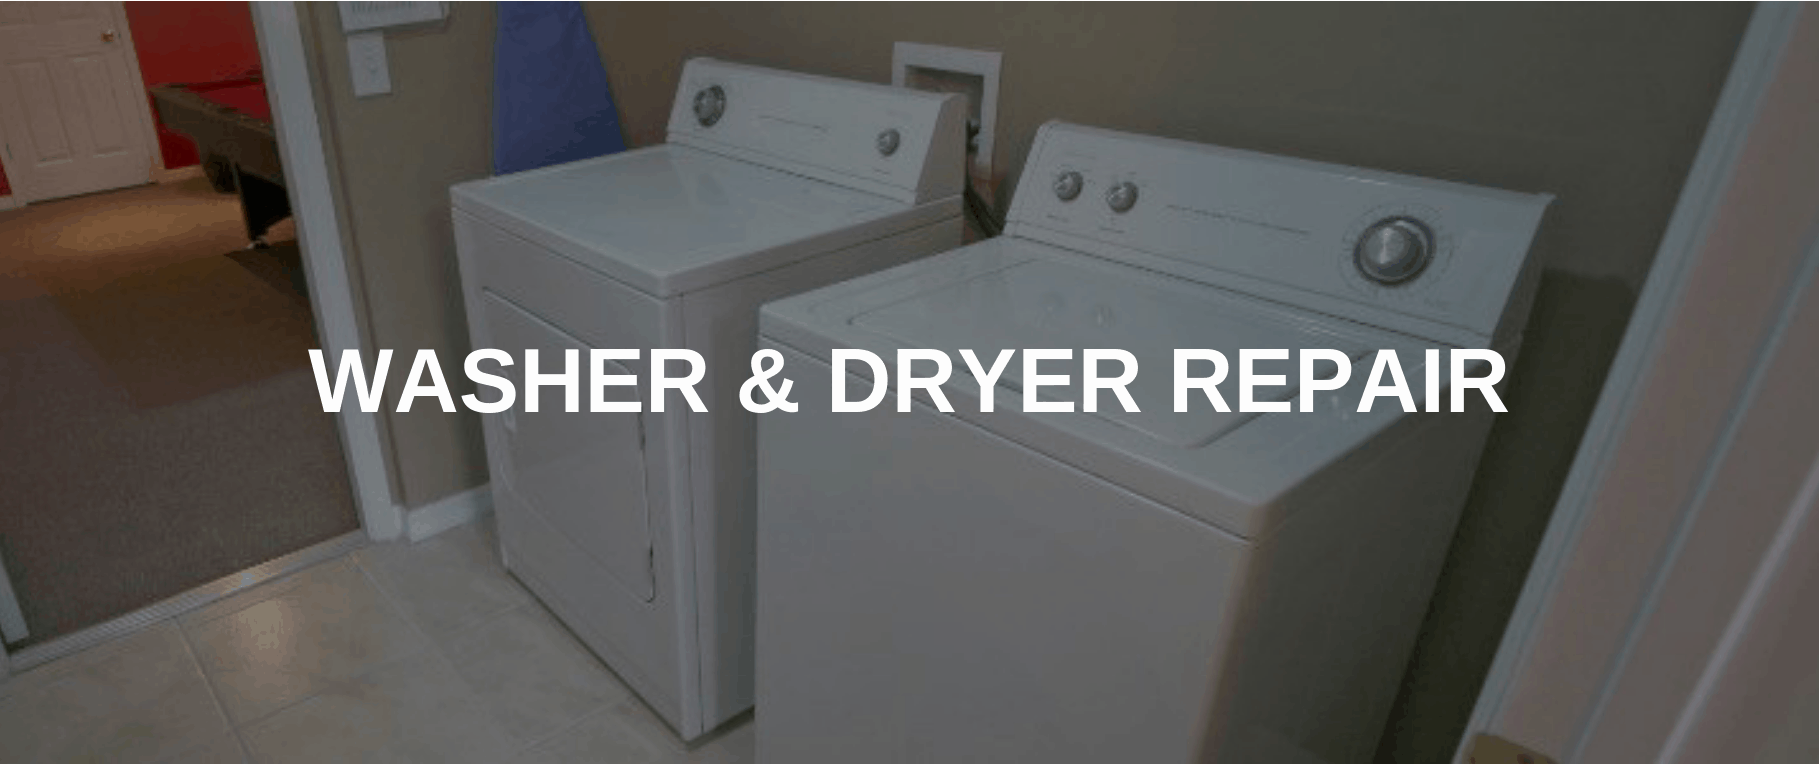 washing machine repair fort lee